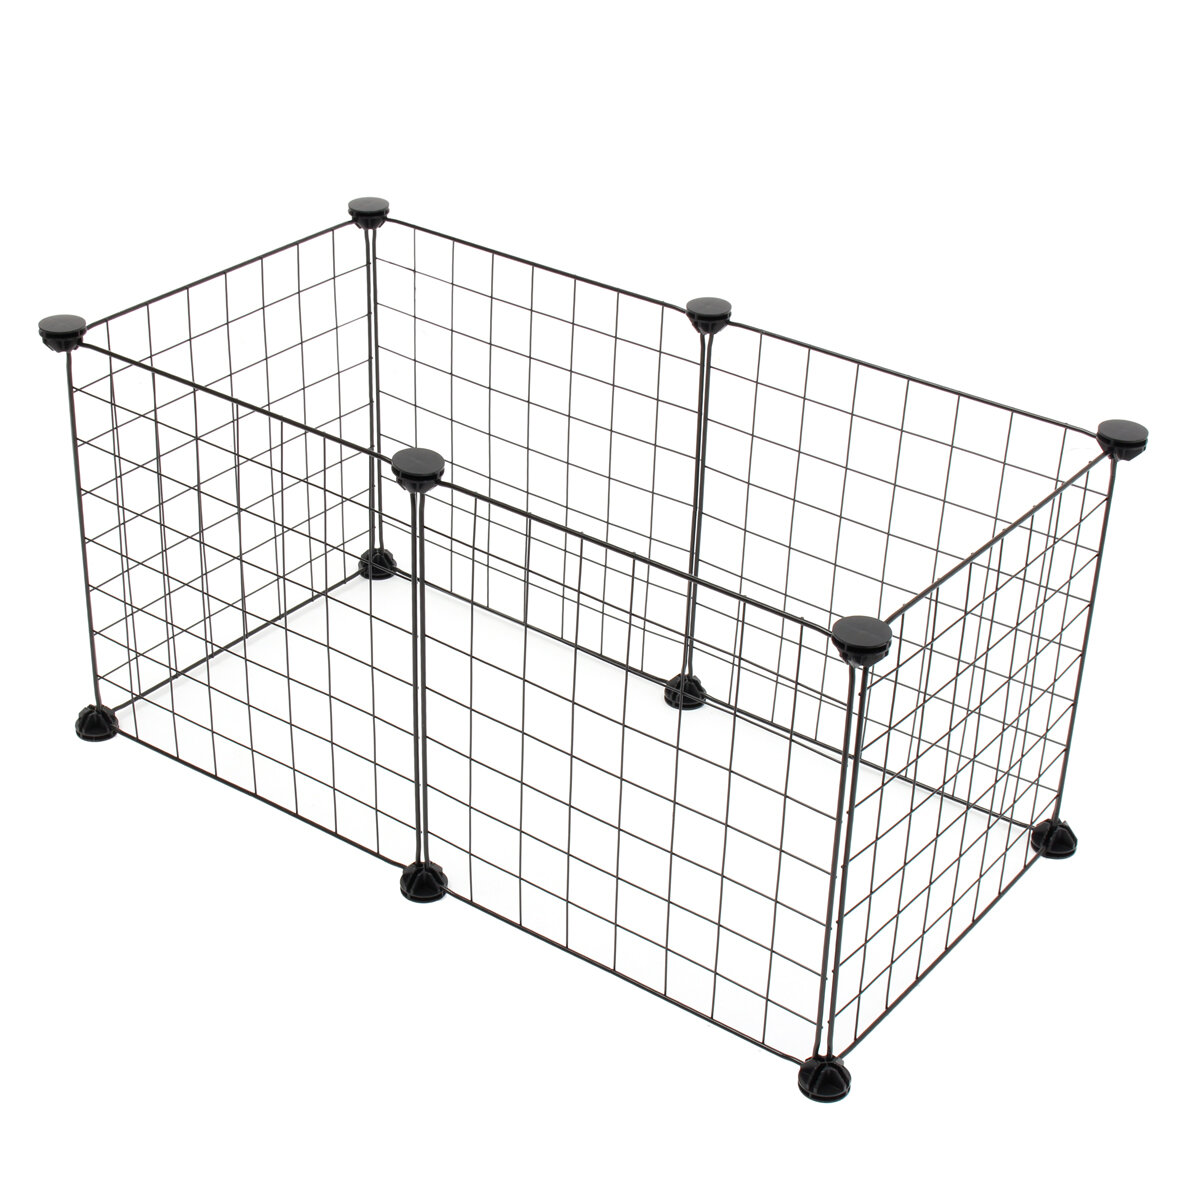 610_Foldable_Panels_Pet_Dog_Playpen_Crate_Fence_Puppy_Kennel_Exercise_Cage